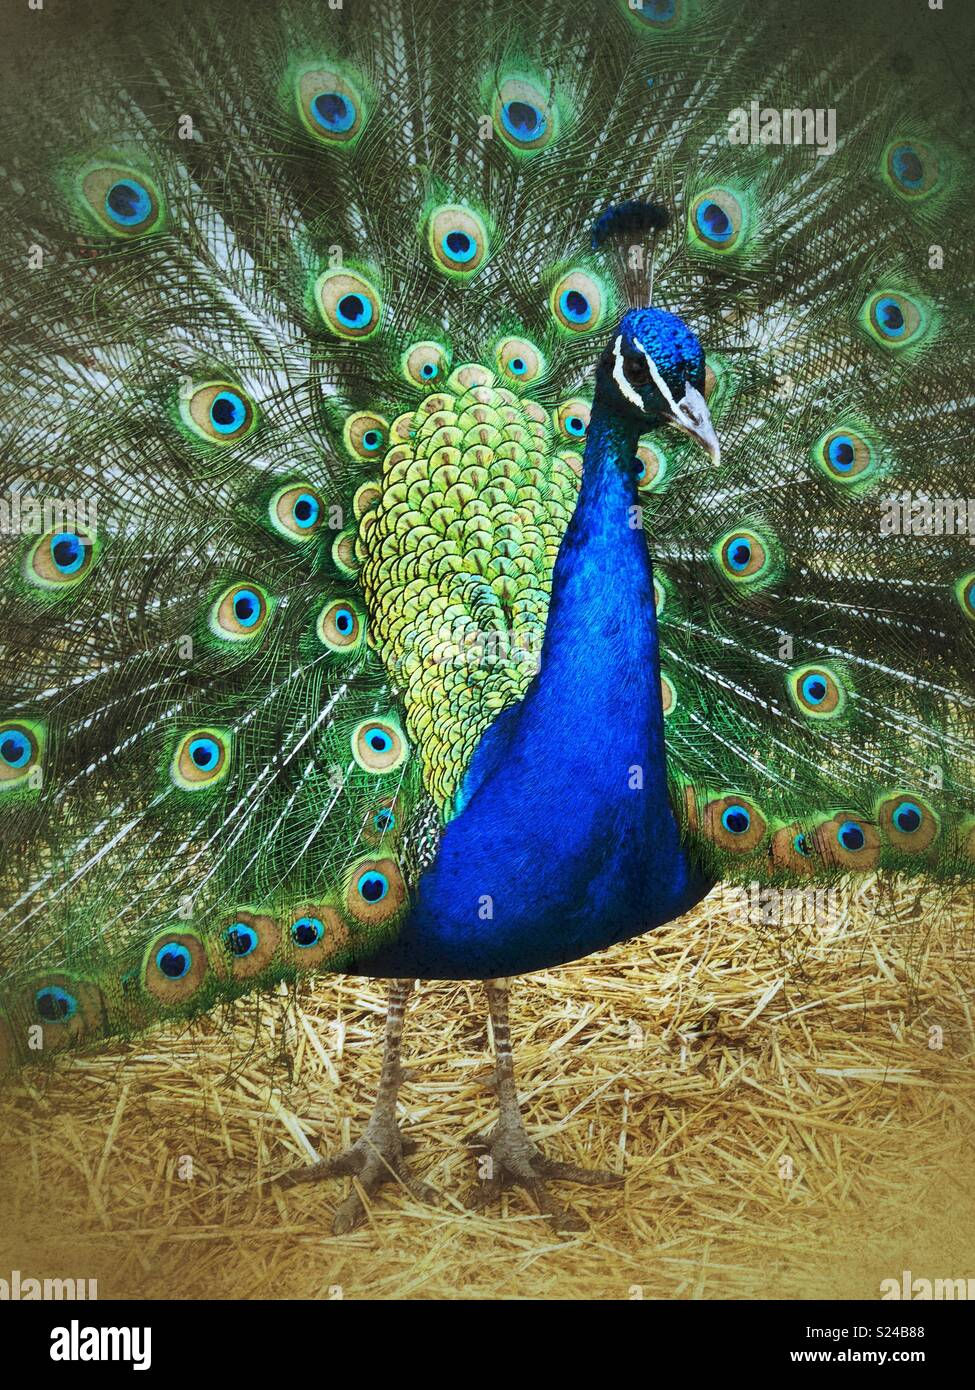 Closeup portrait of blue male peacock full body with fanned tail feathers - Stock Image